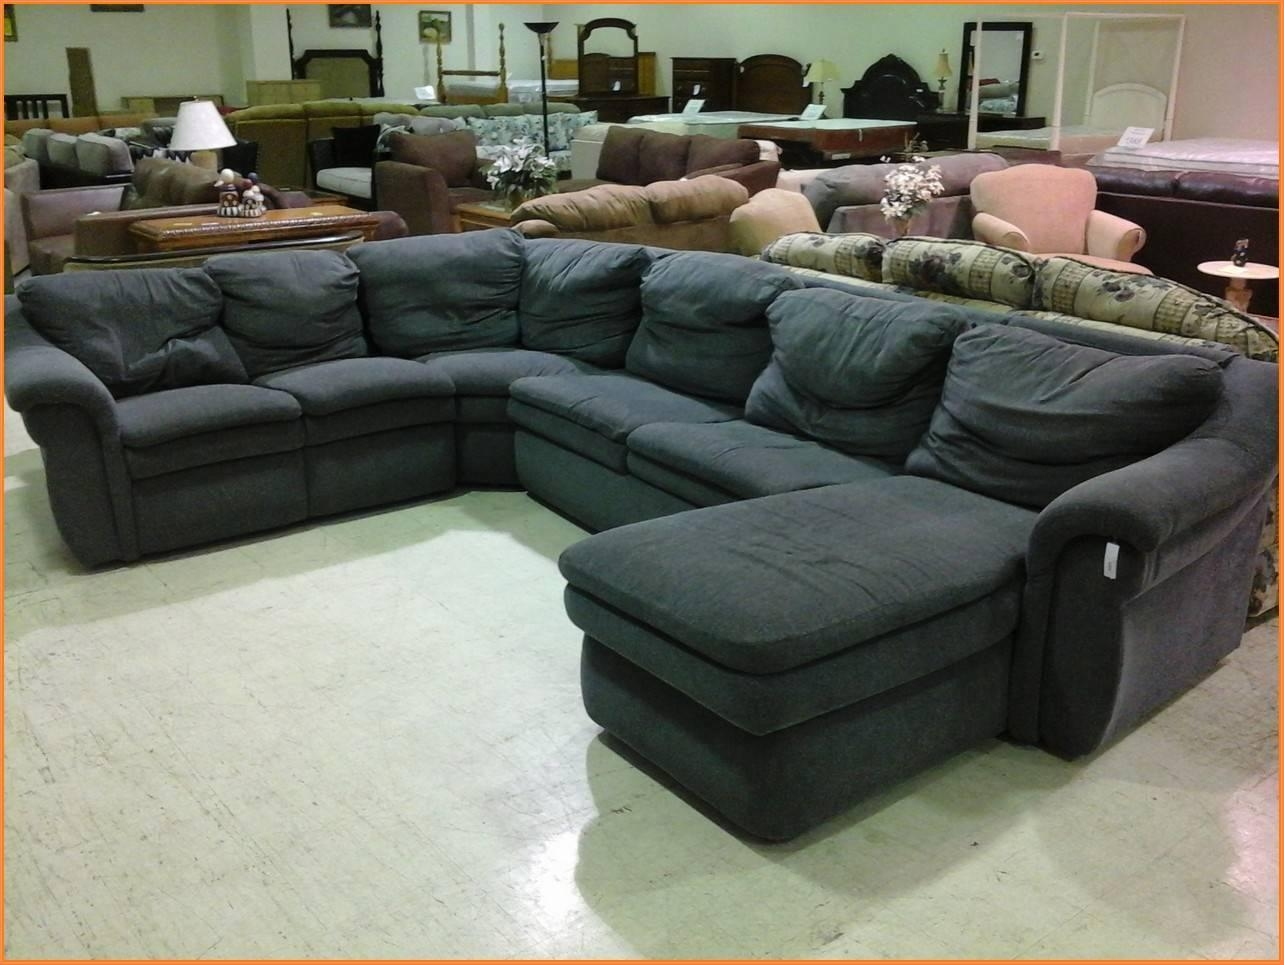 Sofas Center : Inspirational Lazy Boy Sectional Sofa In Office Intended For Lazyboy Sectional Sofas (View 4 of 20)